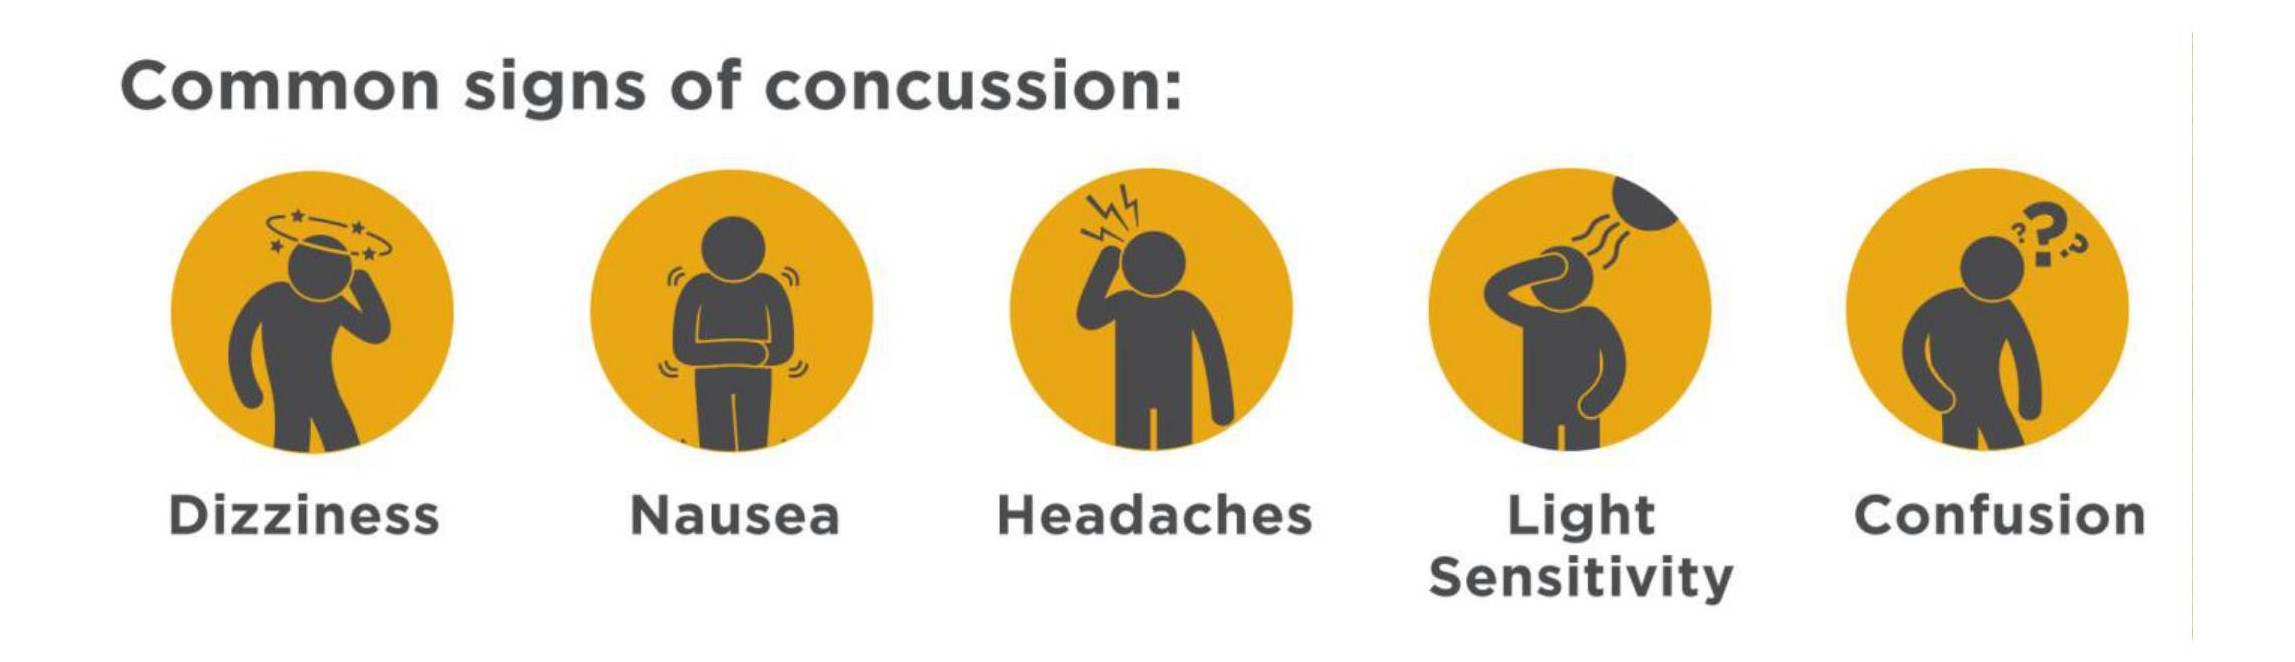 Concussion Signs